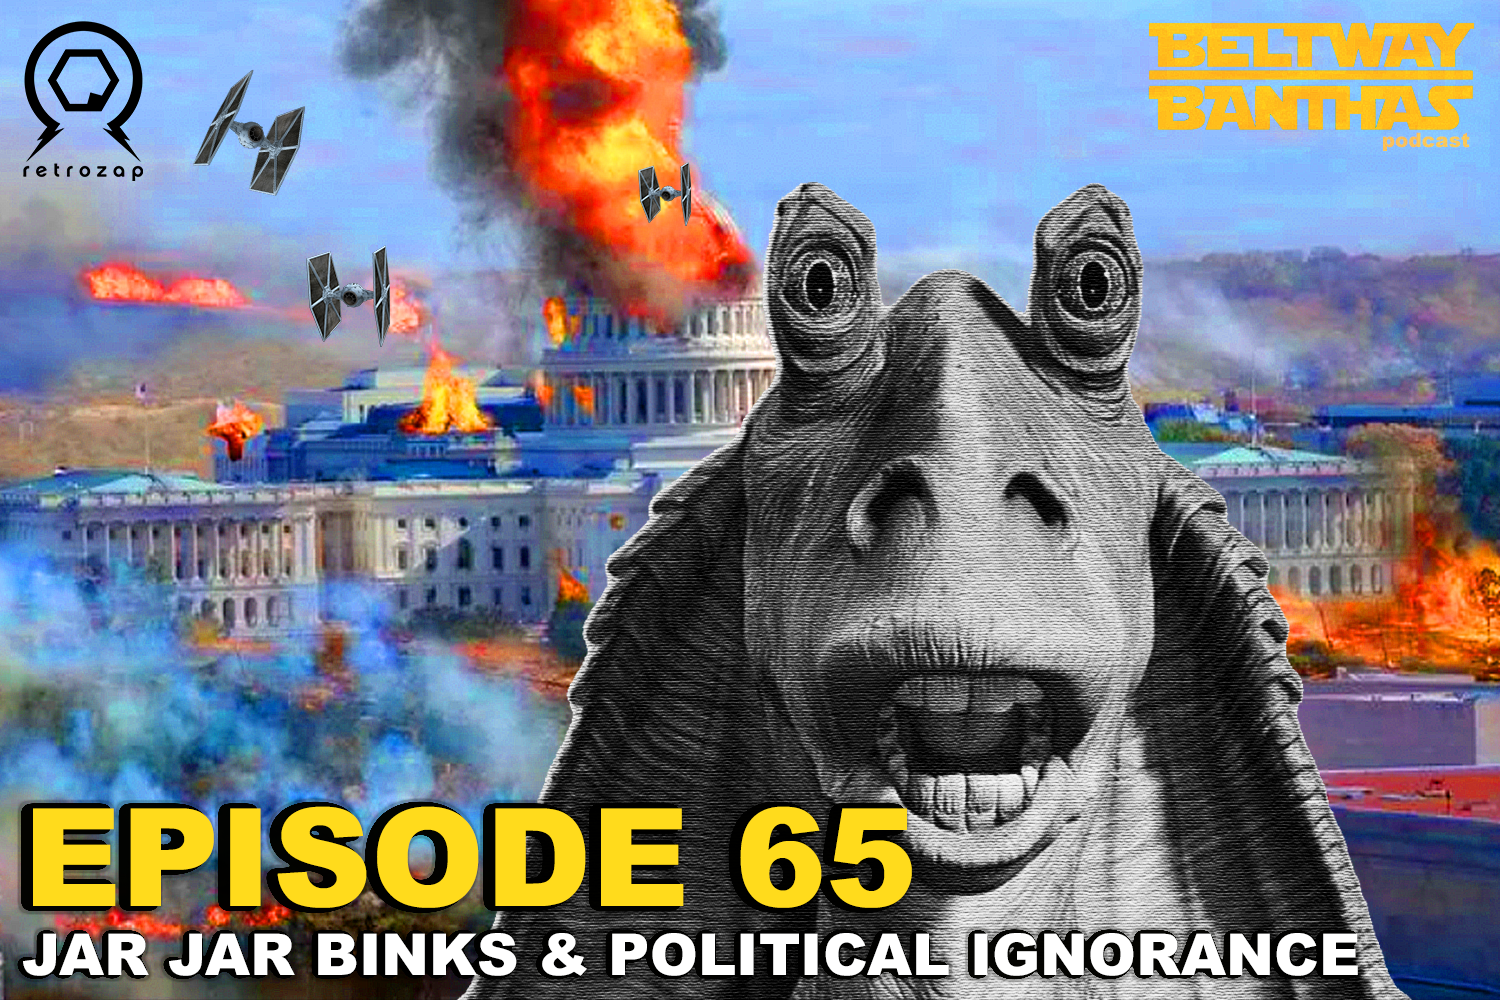 Beltway Banthas #65: Jar Jar Binks and political ignorance